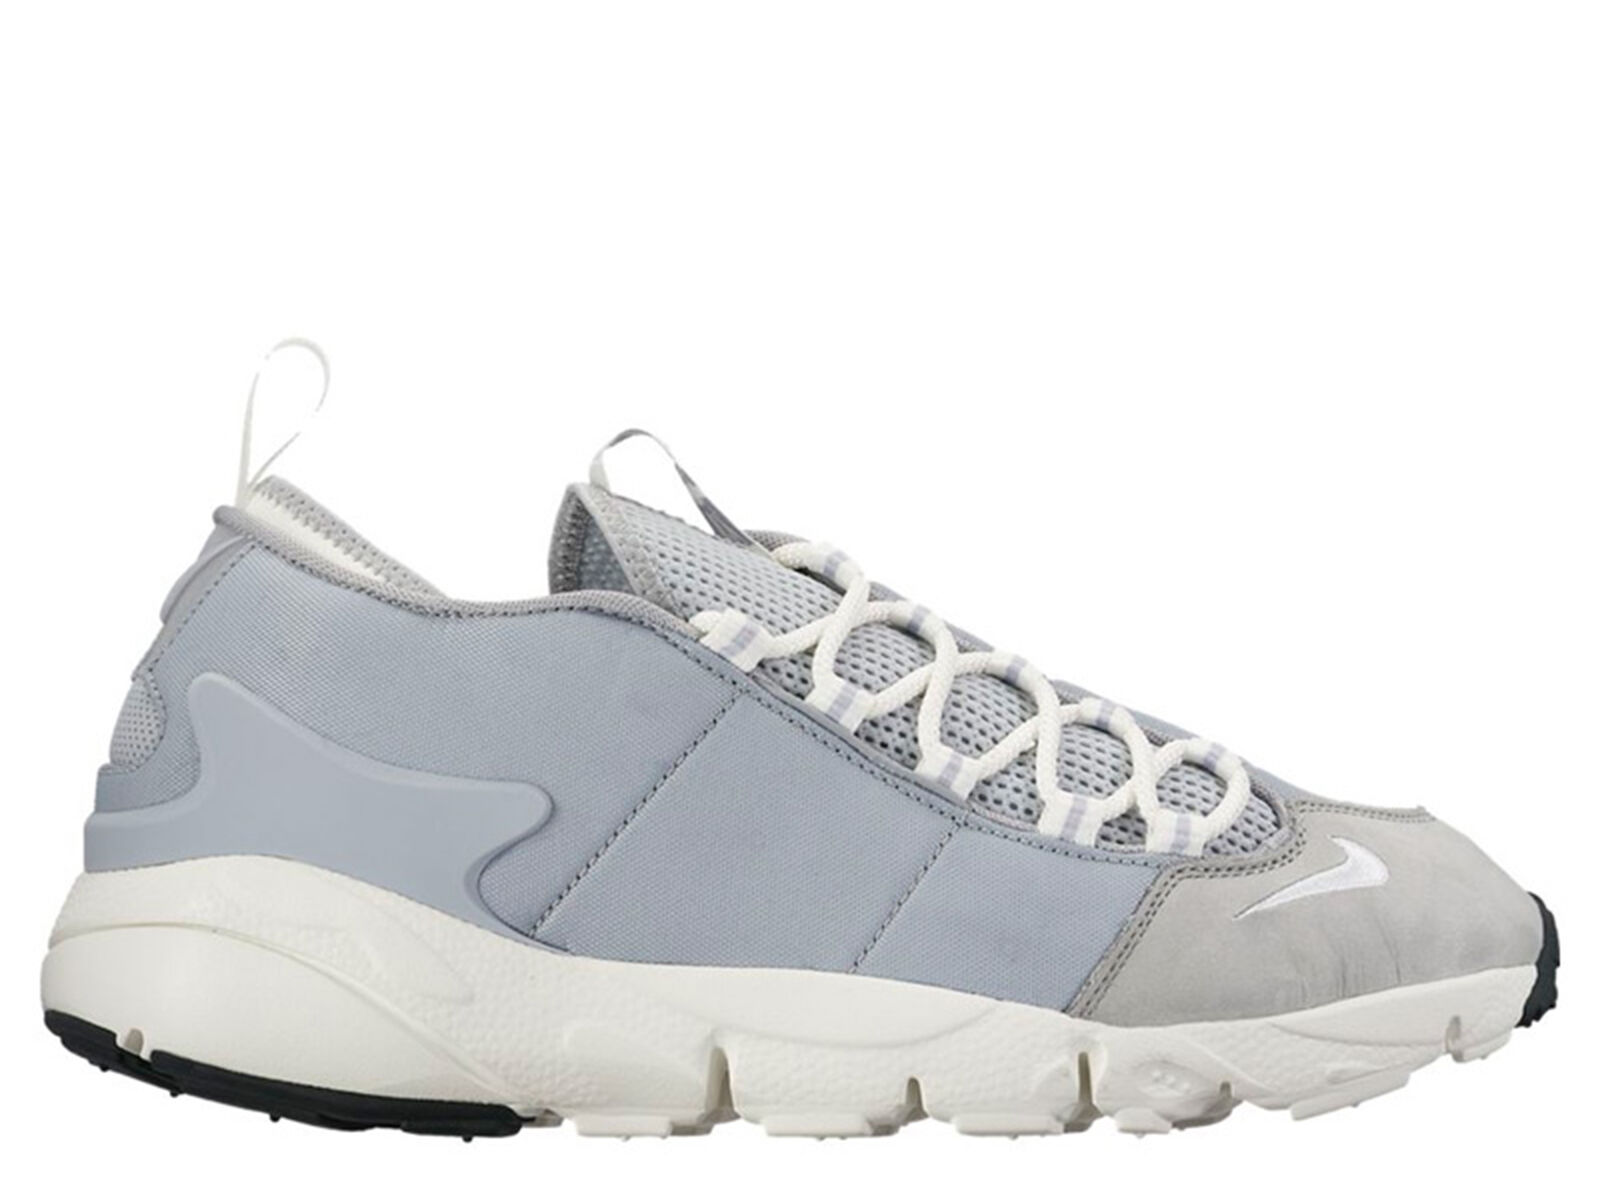 Brand New Nike Air Footscape NM Men's 003] Athletic Fashion Sneakers [852629 003] Men's a8056b